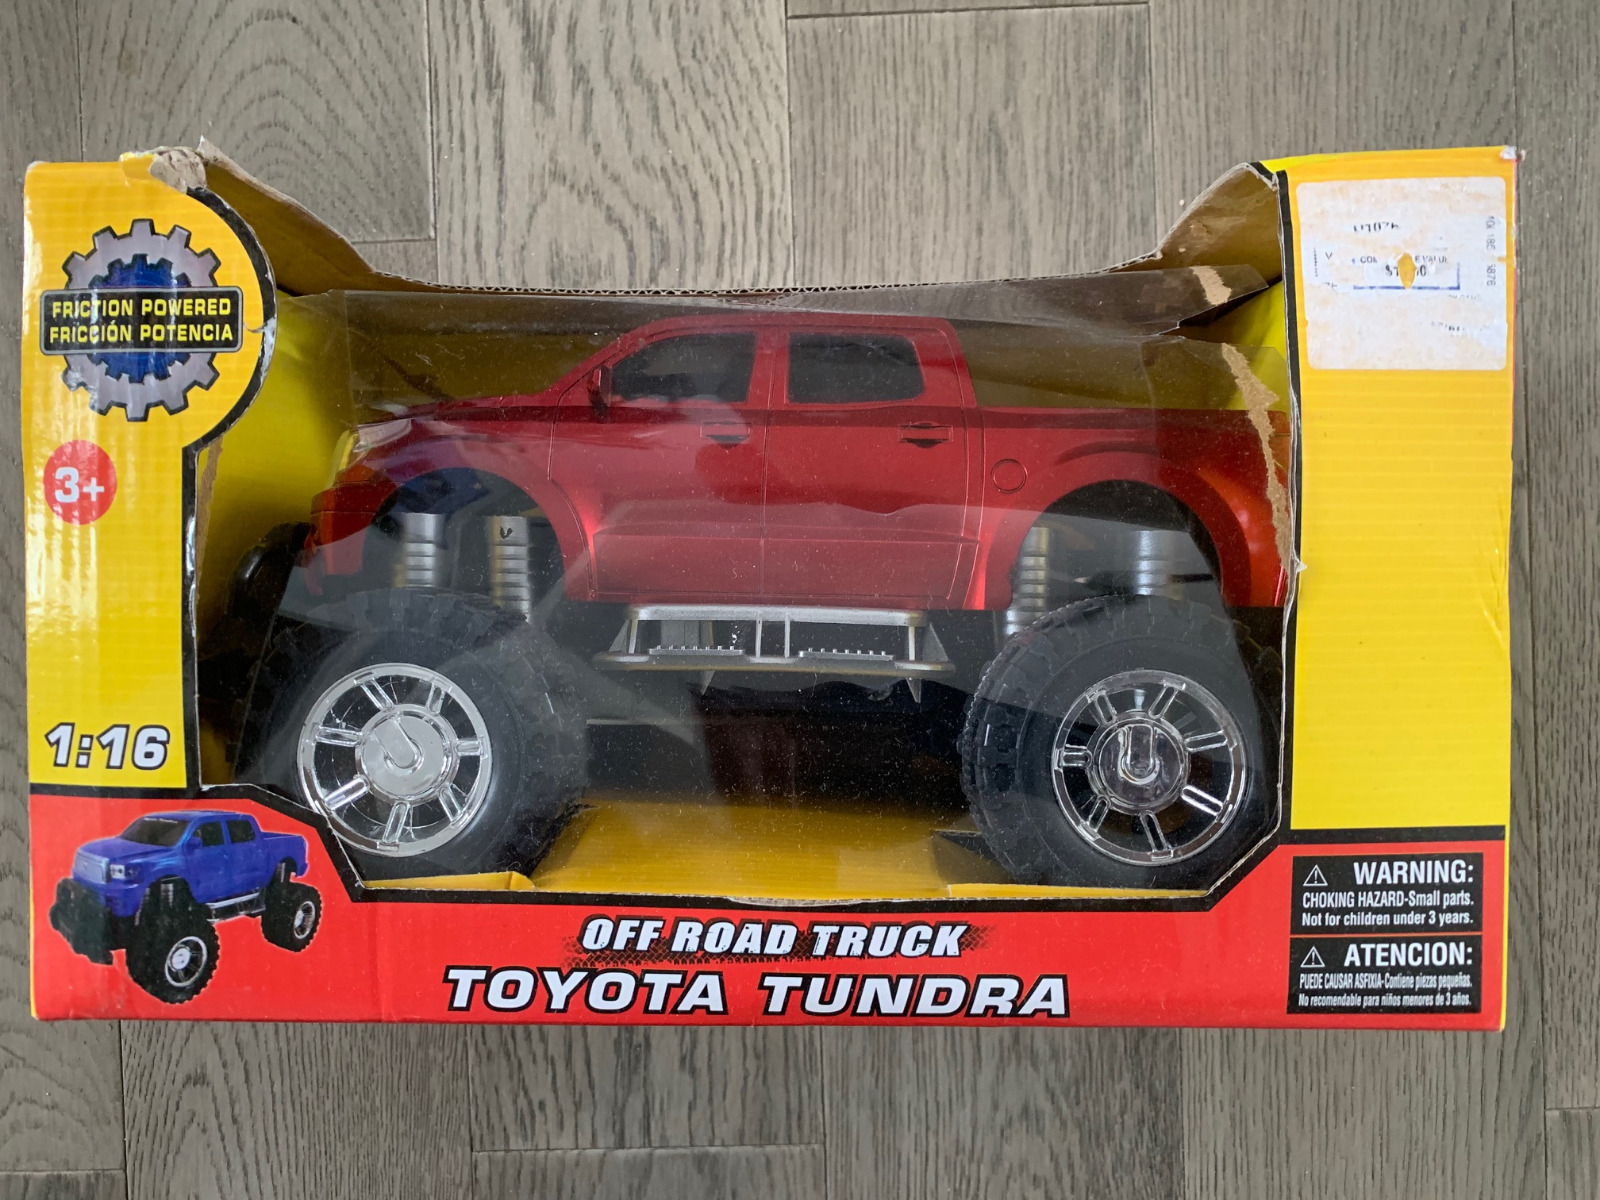 Toyota Tundra off road Toy Truck